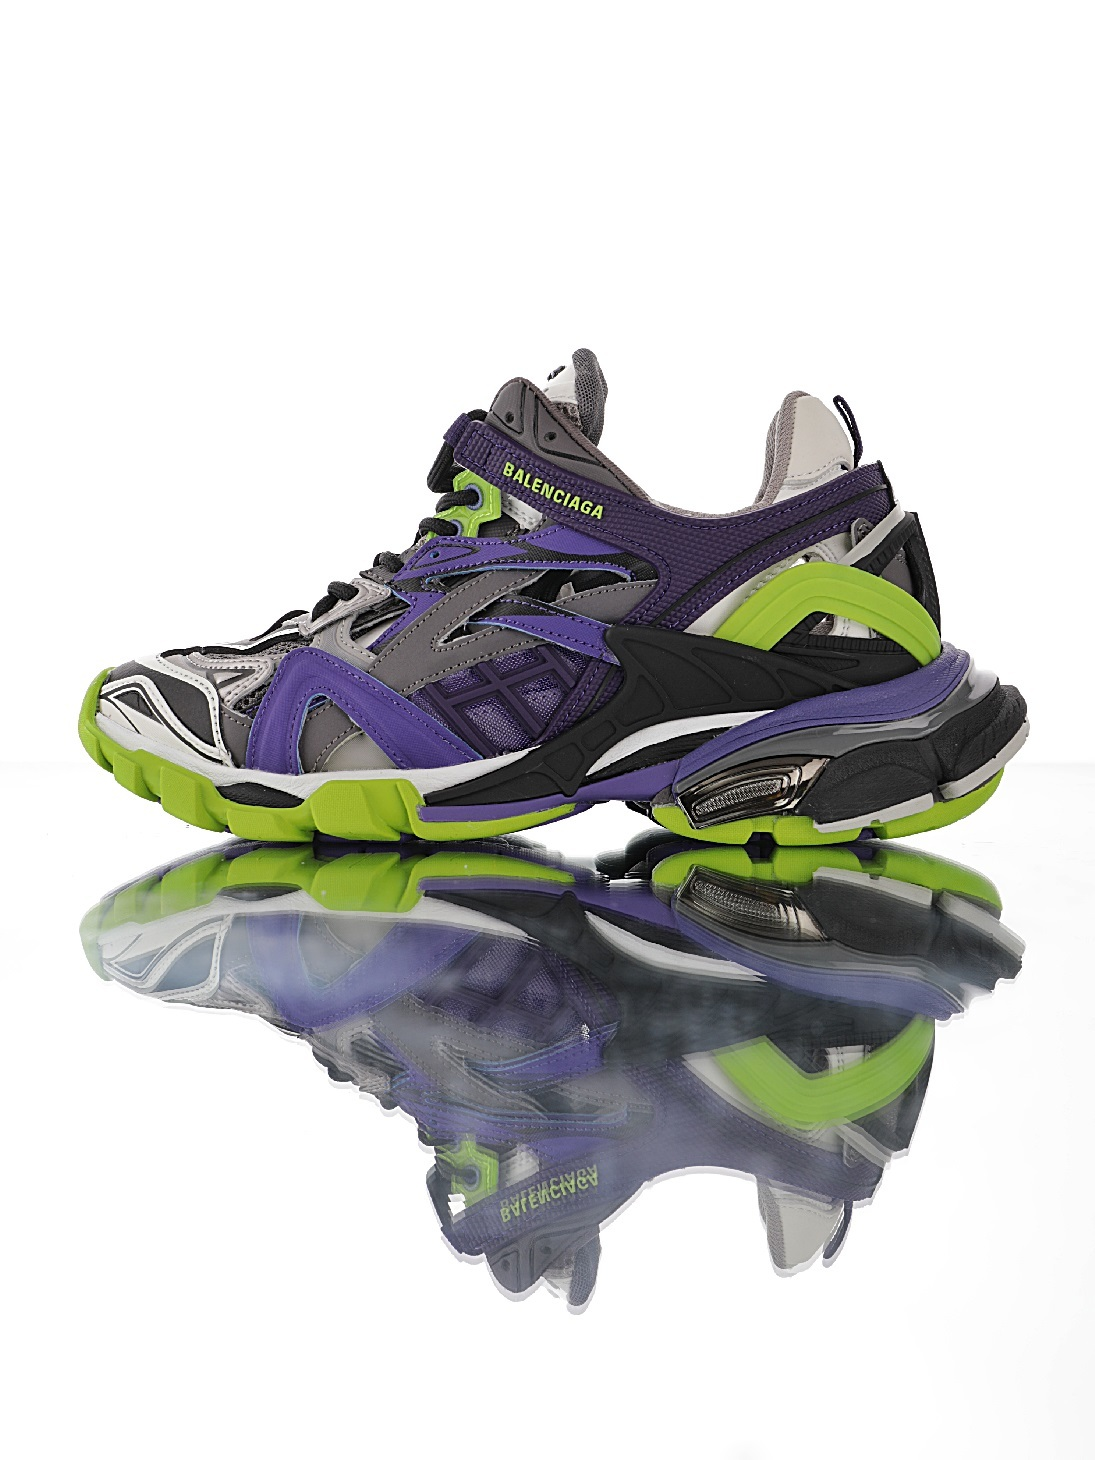 "巴黎世家BALENCIAGA Track 2 Sneakers""Clown/Purple/Green""轨道2代复古野跑姥爹潮流百搭慢跑鞋""镂"